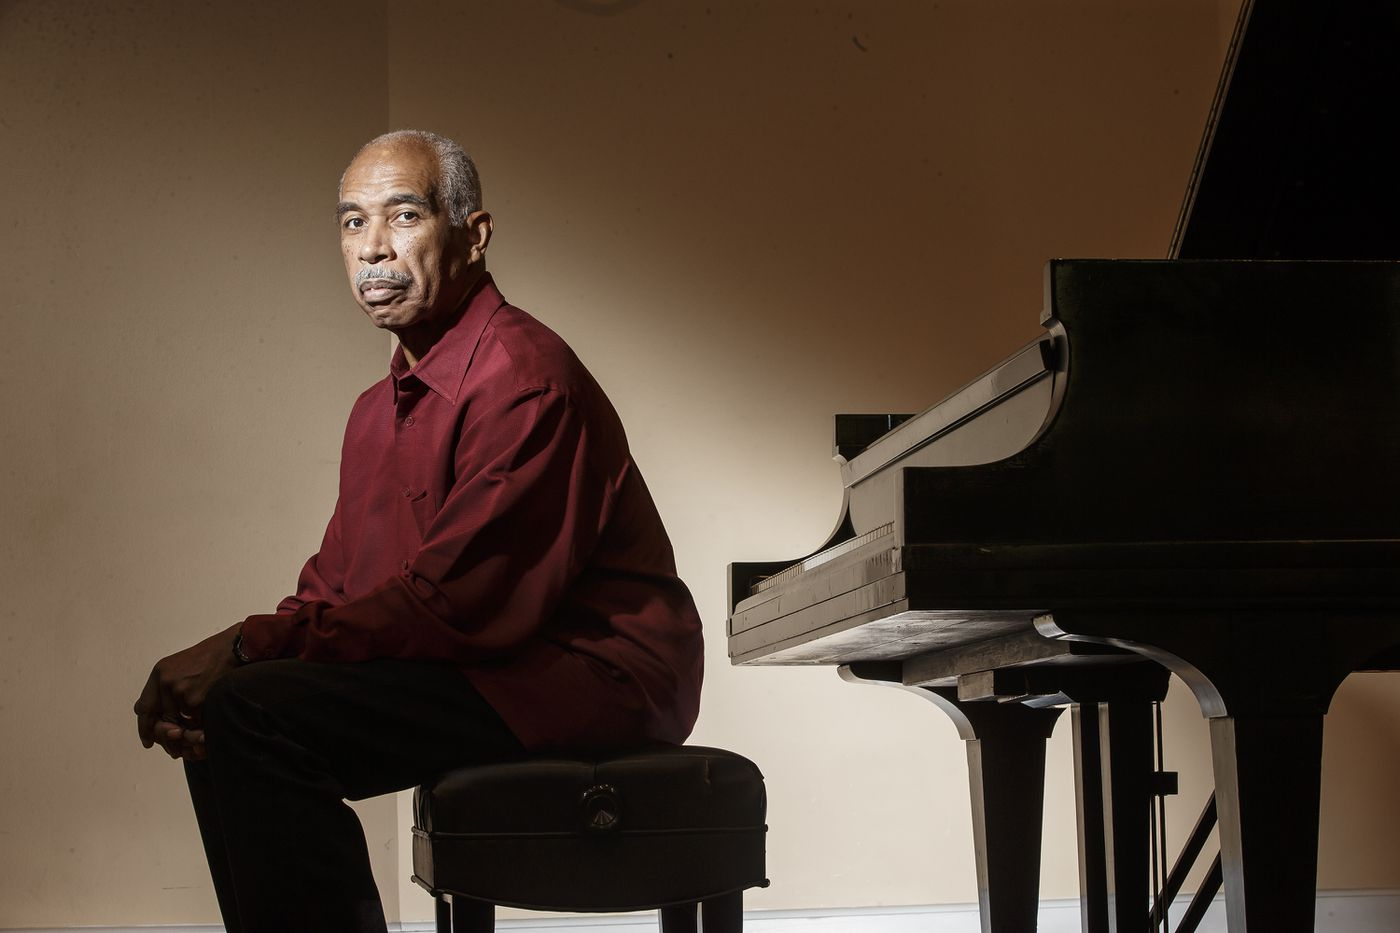 'My spirit is still there': Philadelphia piano great forced to retire because of Parkinson's